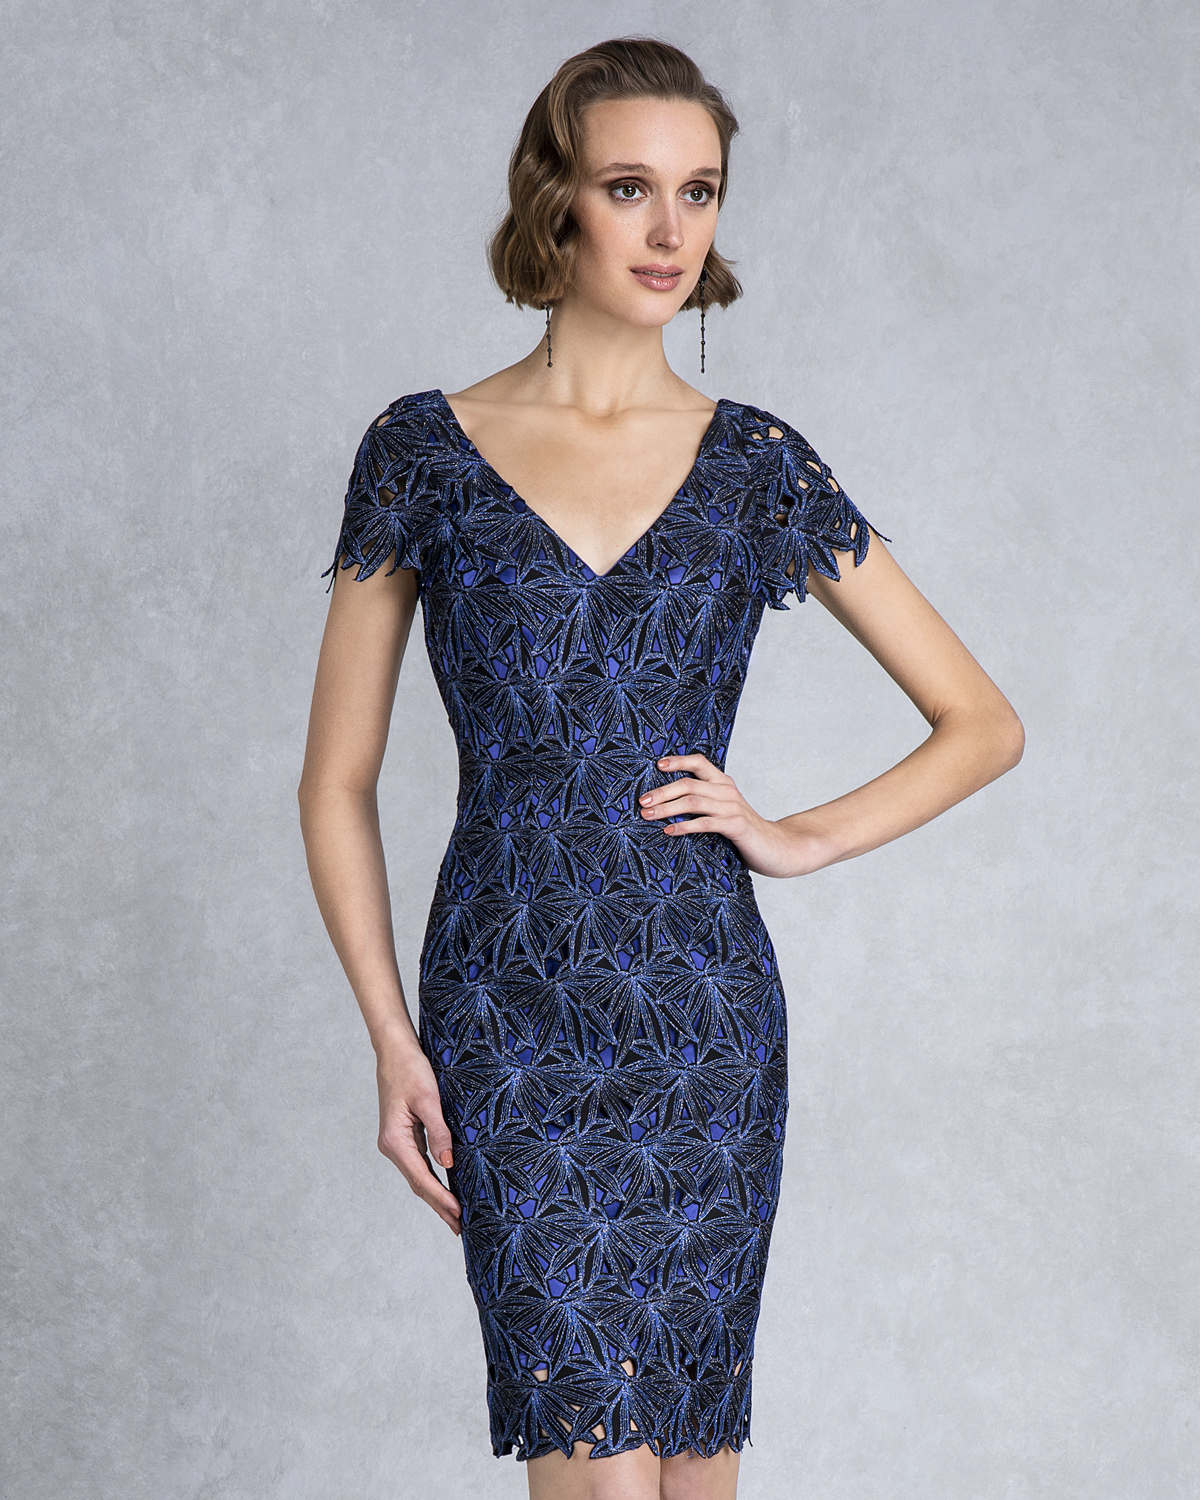 Classic Dresses / Mother of the bride short lace dress